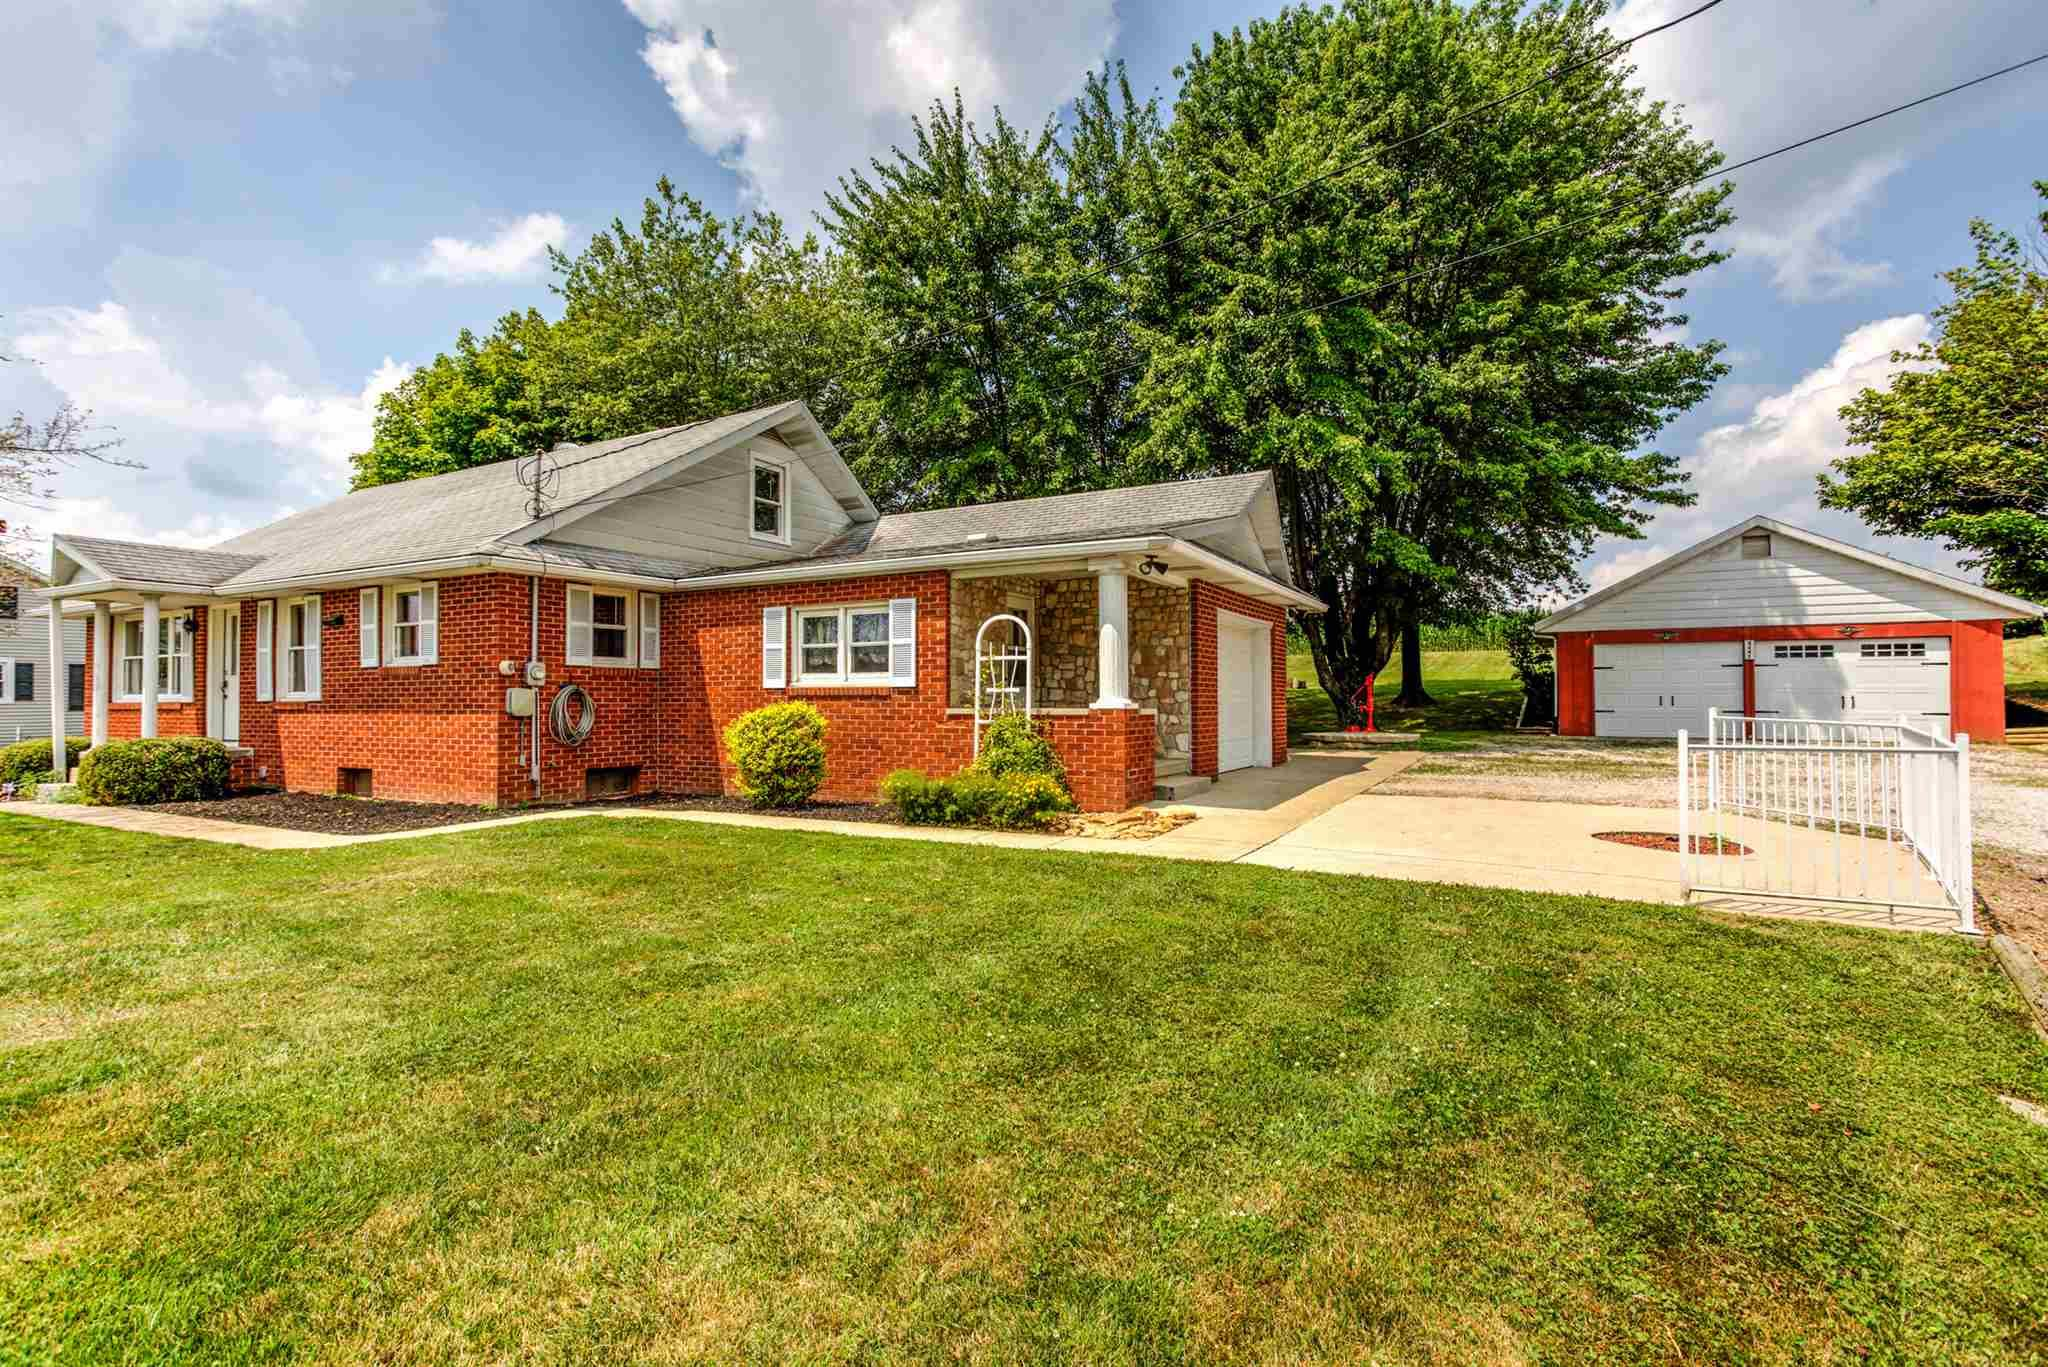 All brick home in a rural setting in SE Dubois School District.  This home features 3 bedrooms, 1.5 bathrooms, and a open floor plan with family/dining/kitchen area.  The kitchen has all appliances included.  Nice large laundry room with extra storage as well.  Two of the bedrooms are on the main floor with a full bathroom.  The upstairs is a large bedroom area with a half bathroom.  The main floor is original wood floors.  The house has a unfinished basement for extra space or storage.  The outside is wonderful with a attached 1 car garage and a detached 2 car garage.  There is an additional shed for extra storage as well.  Enjoy the evenings looking out at the countryside on this beautiful lot.  Additional info:  Blown insulation in attic and tankless water heater.